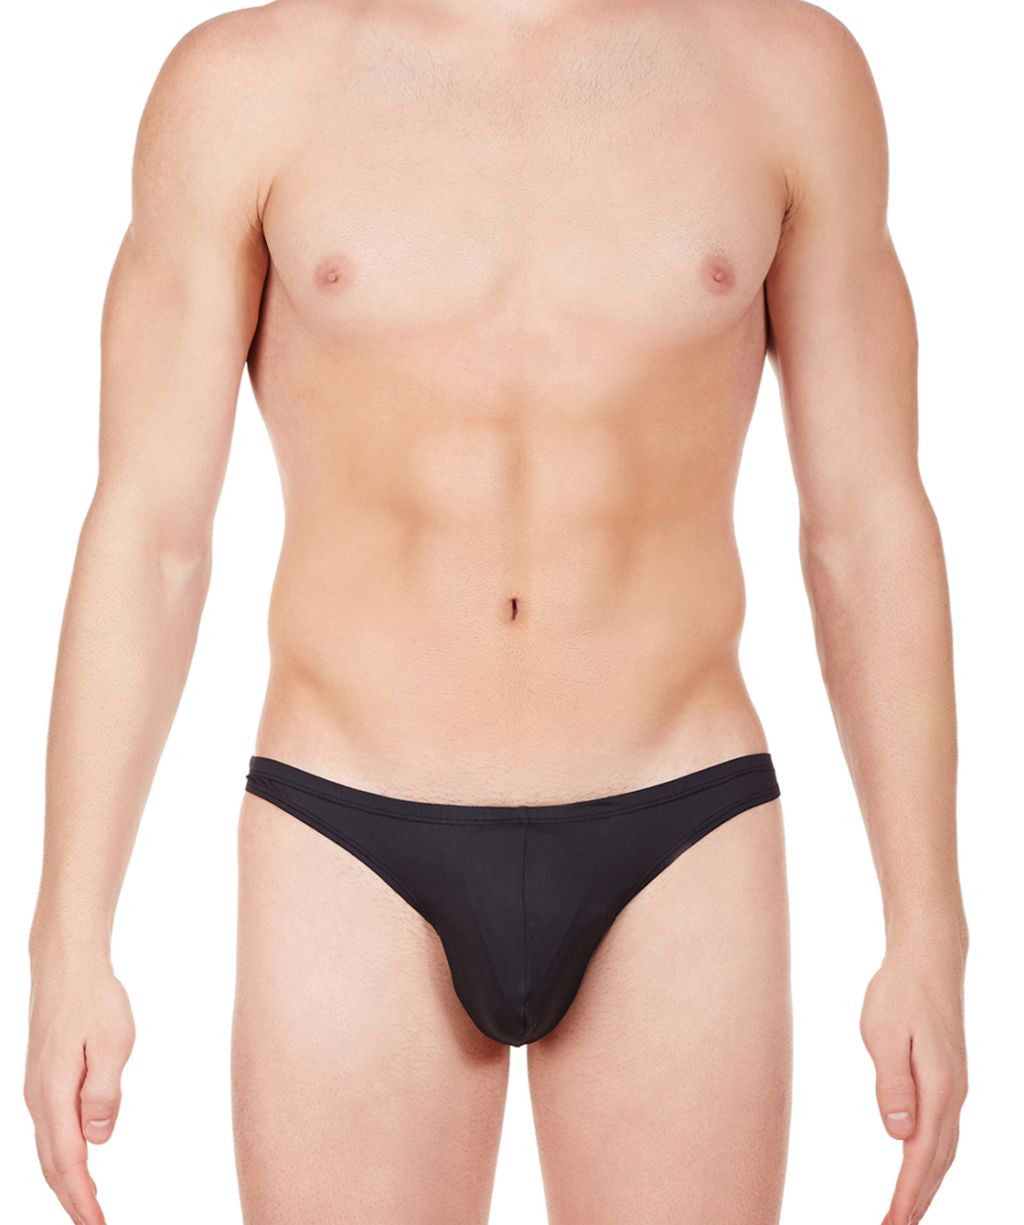 La Intimo Black Men Know It All Nylon Spandex Briefs